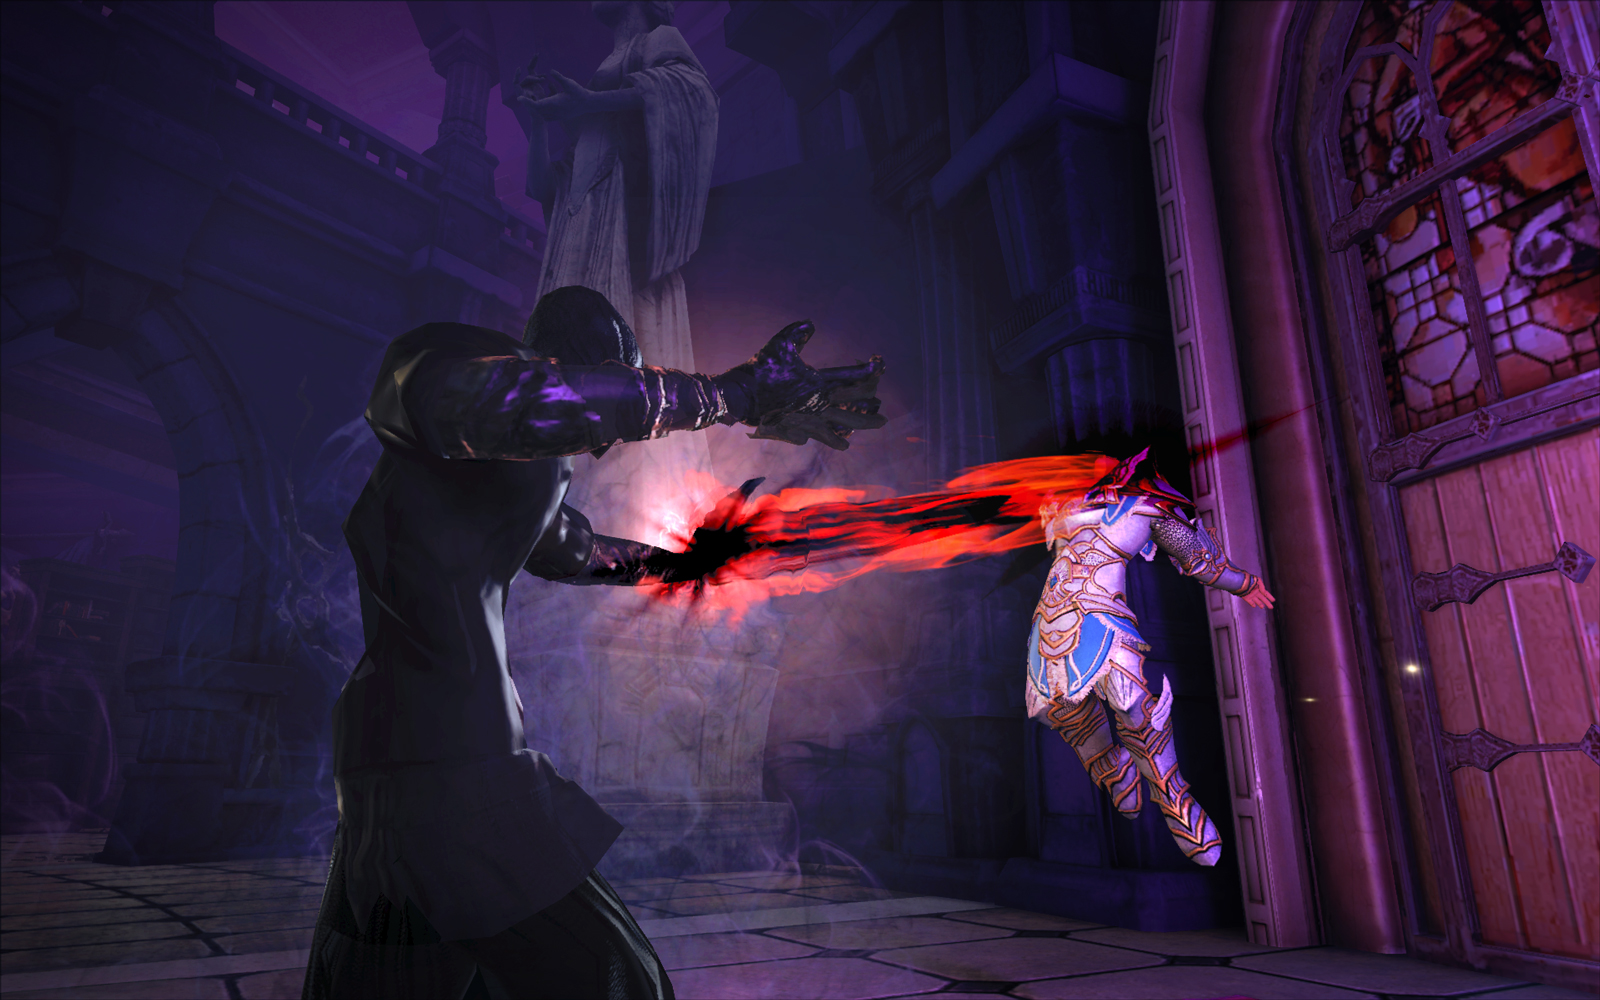 Neverwinter's Shroud of Souls endgame quest comes with a new